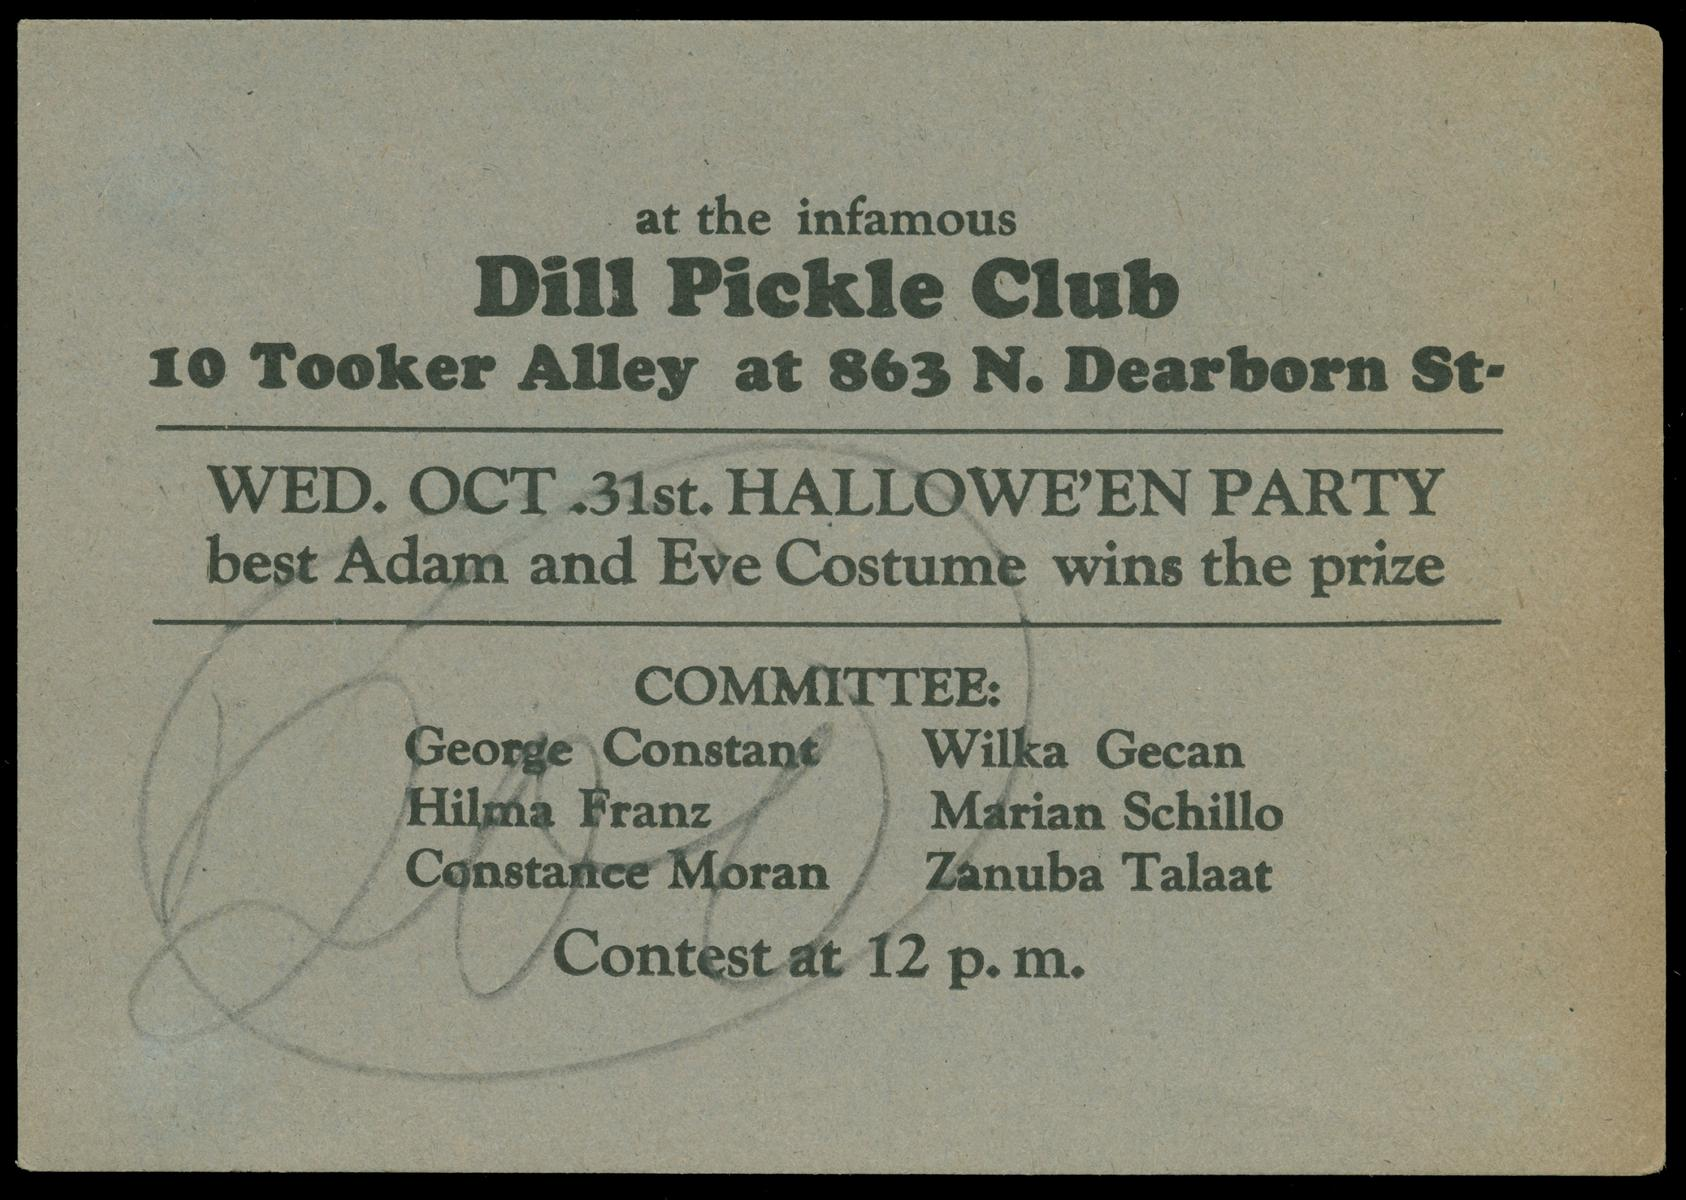 ECC | At the infamous Dill Pickle Club Halloween Party